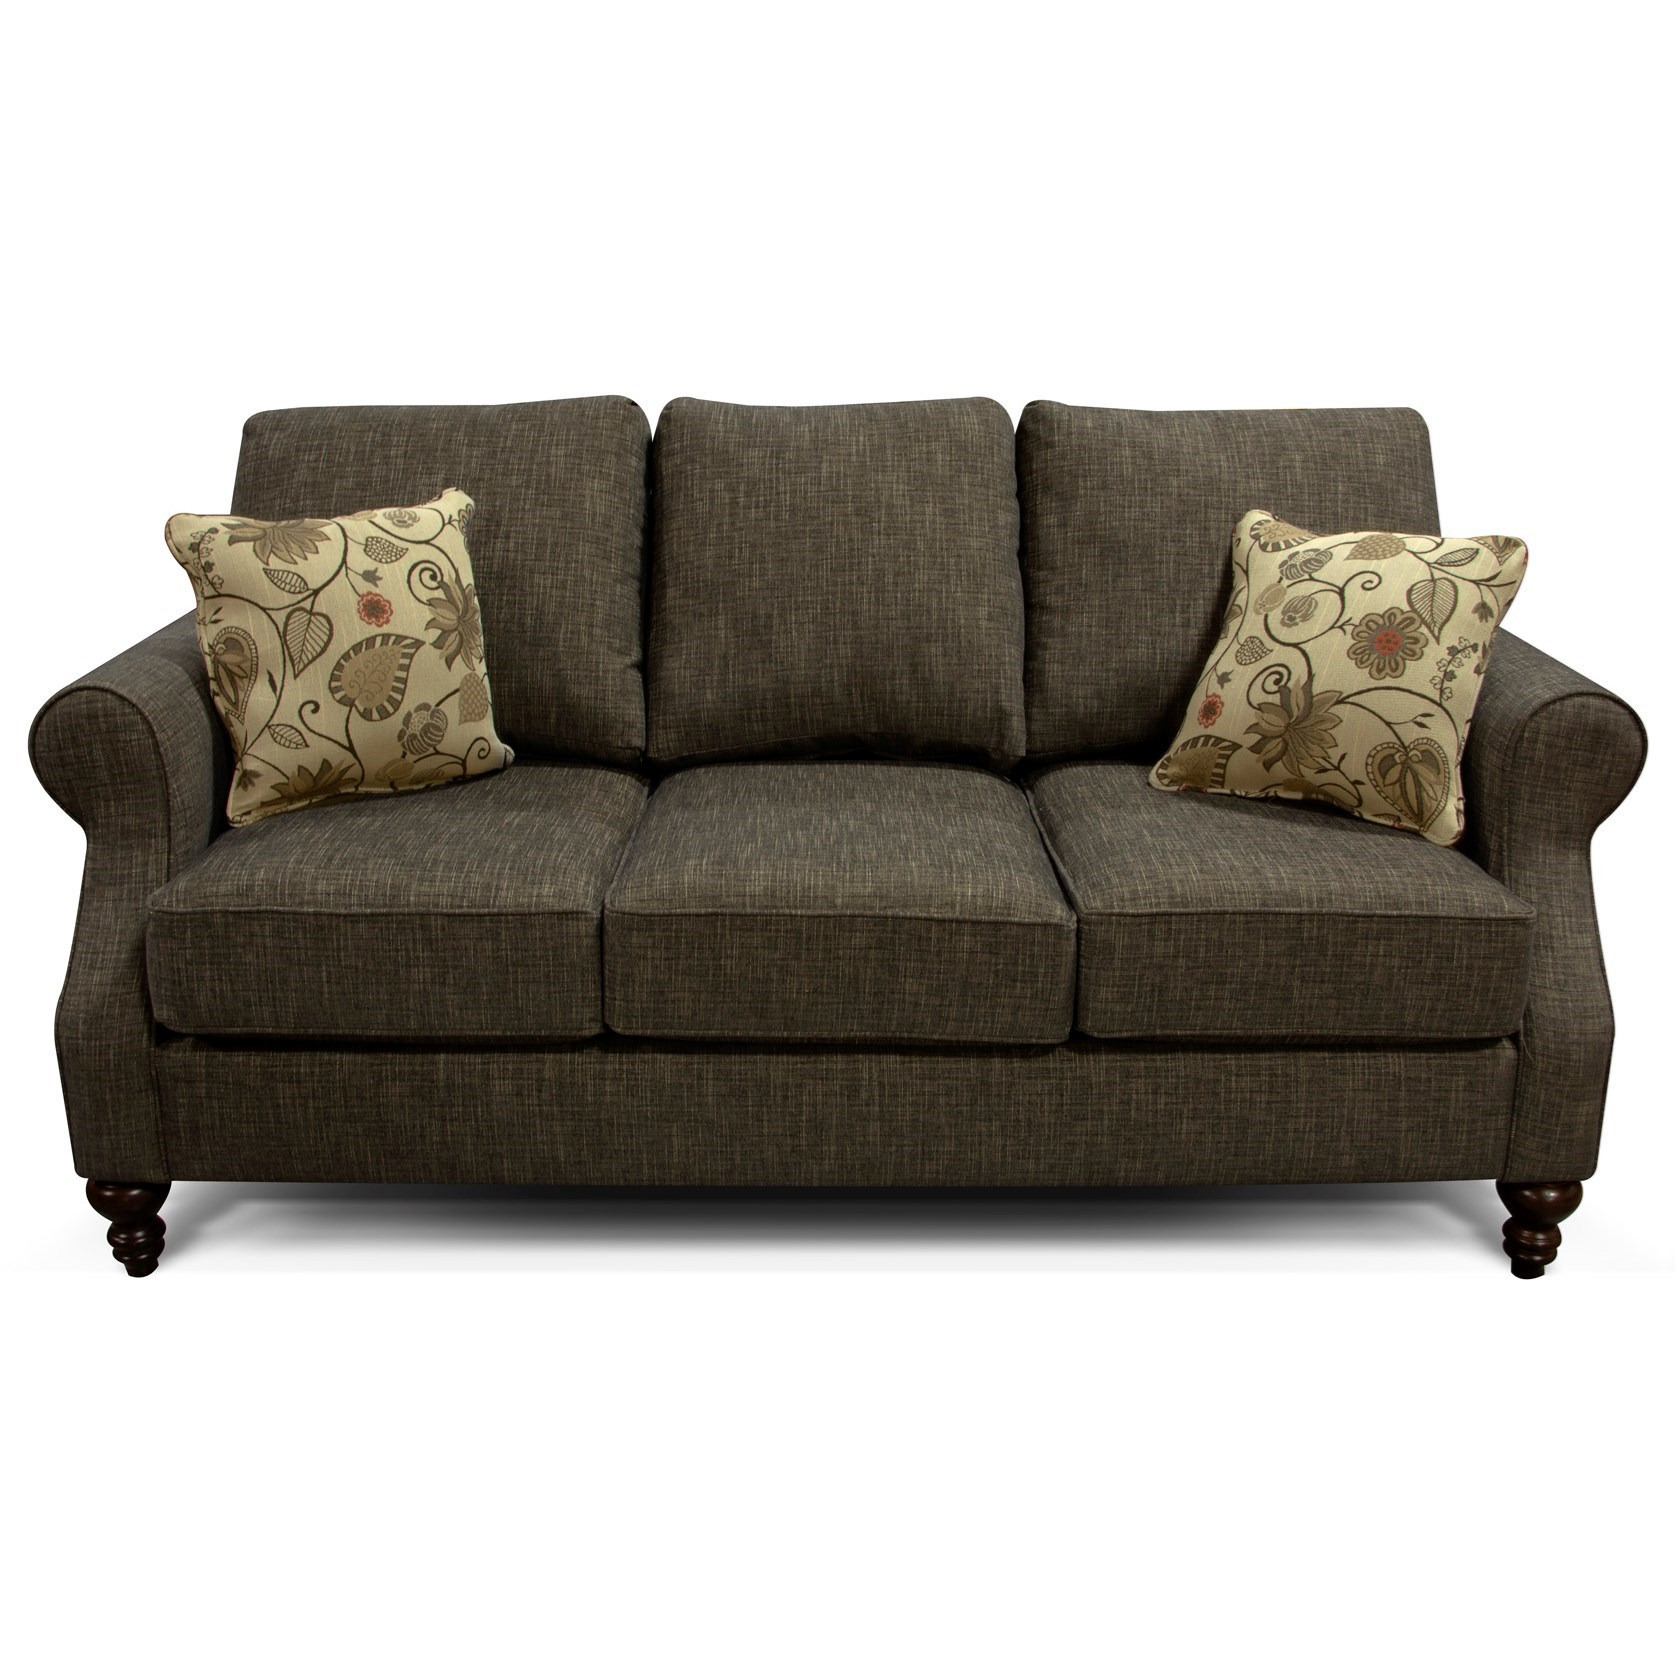 England Brinson And Jones 1z05 Small Scale Sofa With Three